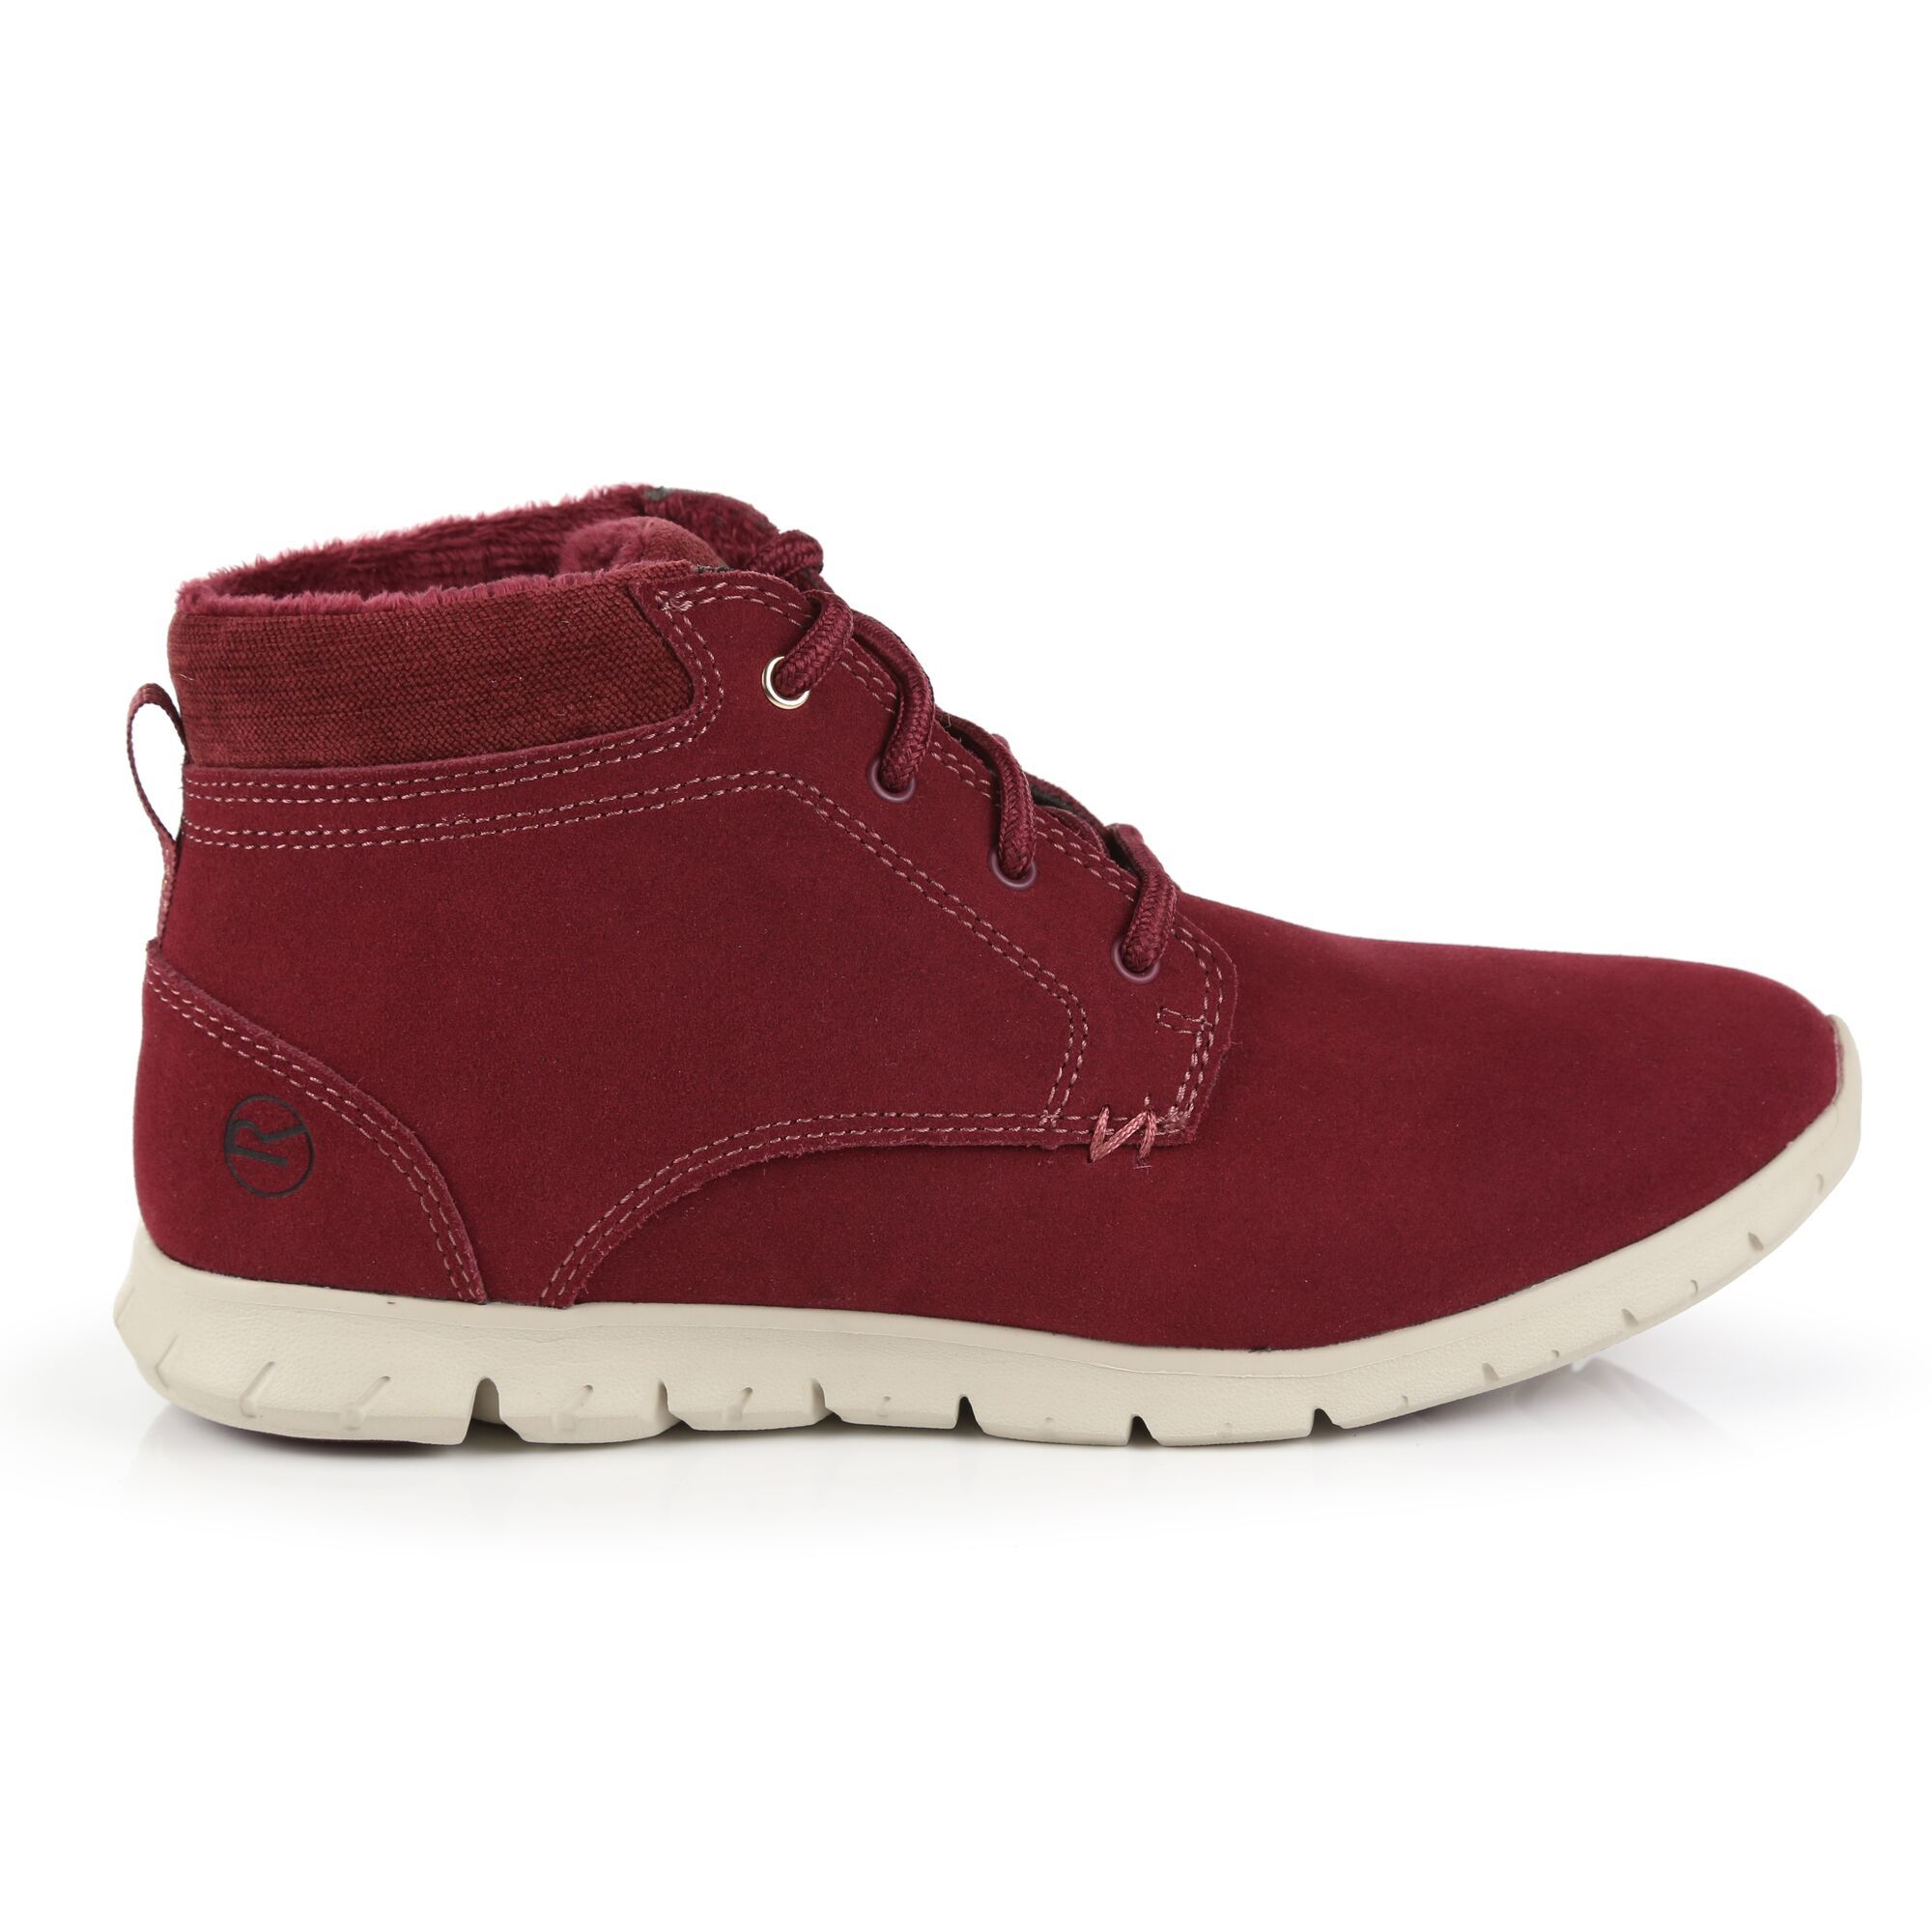 Regatta Great Outdoors Womens/Ladies Marine Suede Leather Thermo Ankle Boots